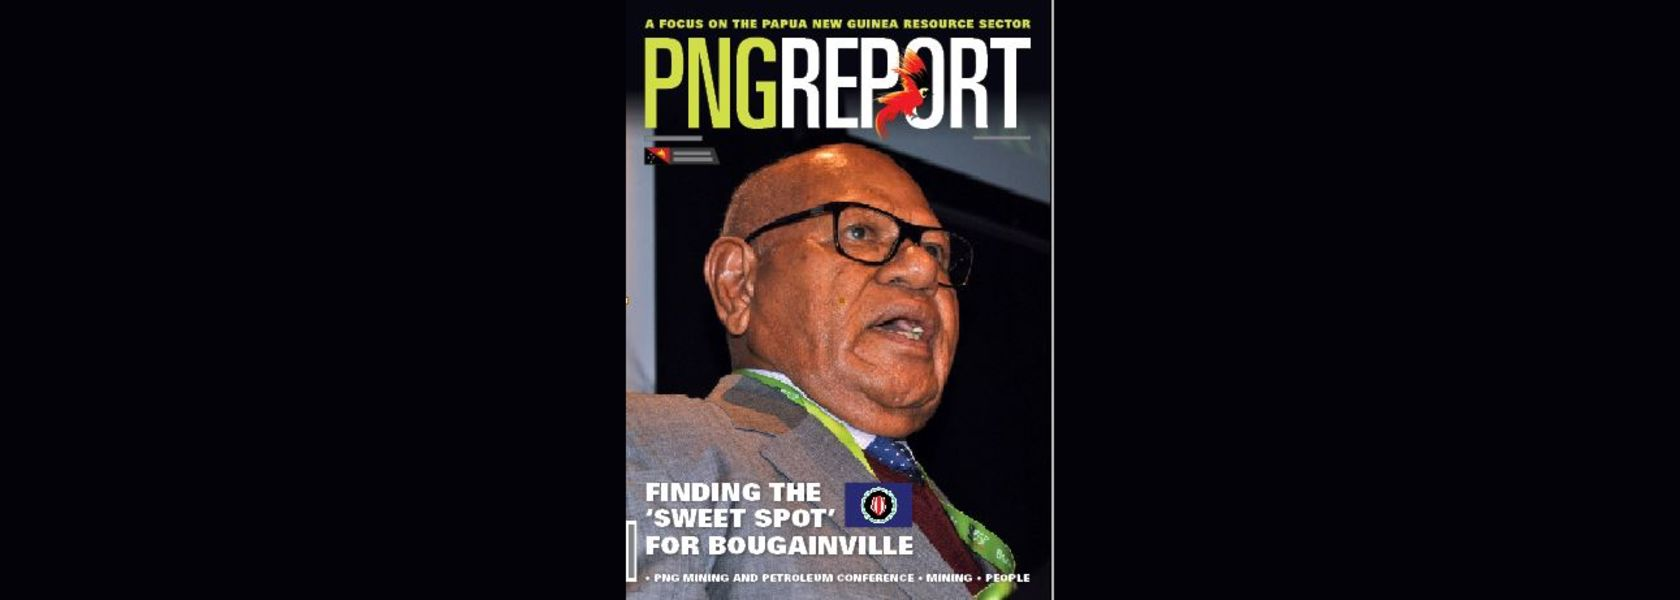 Get your PNG Report magazine!